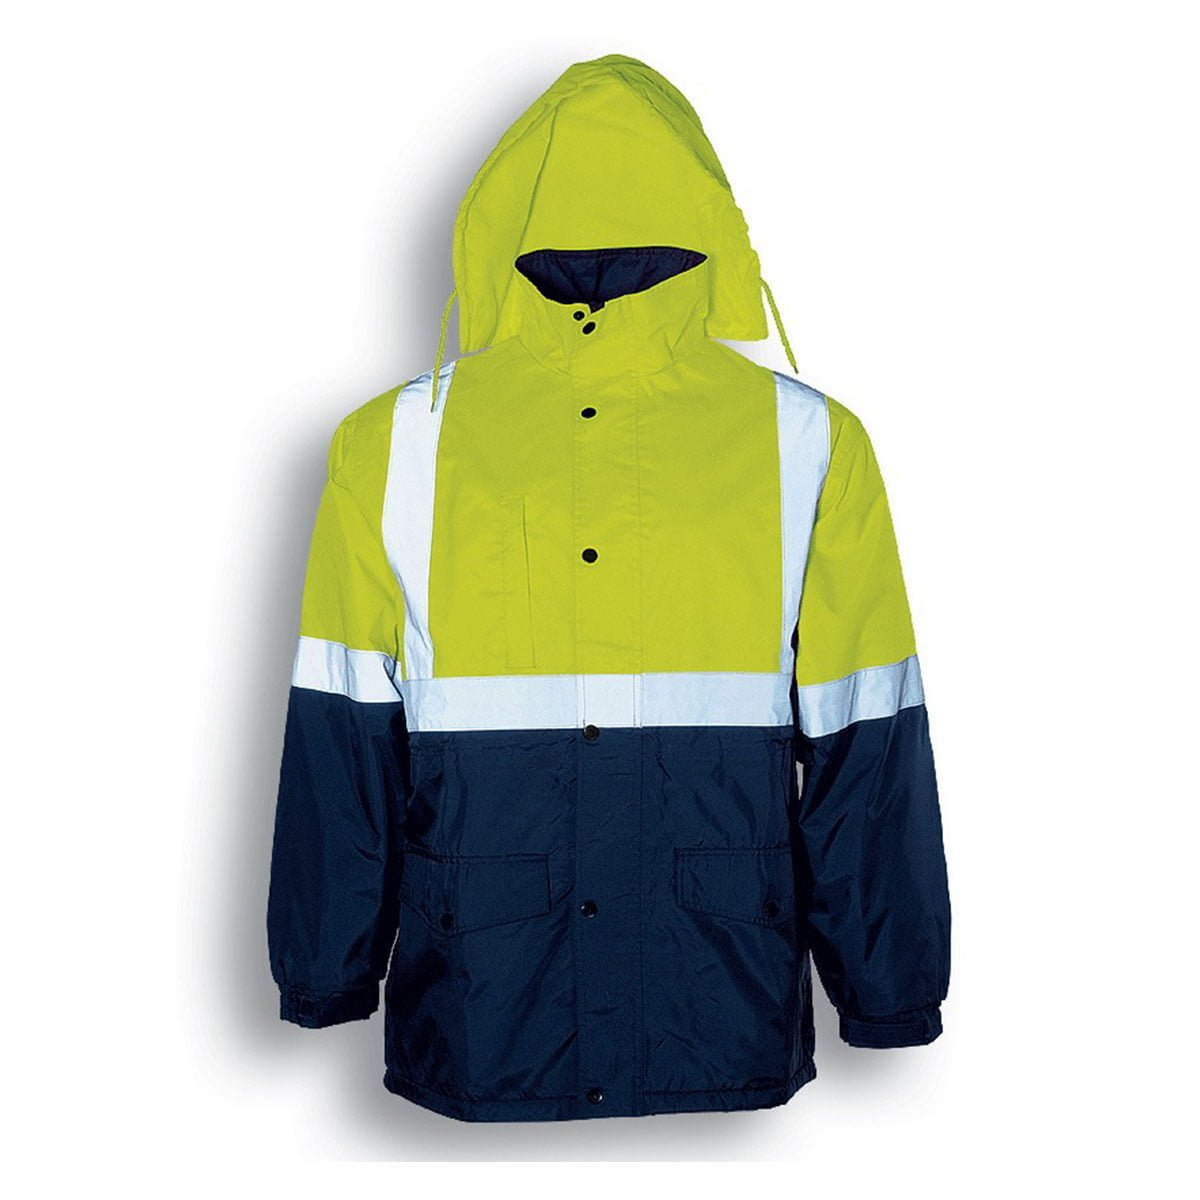 HI-VIS POLAR FLEECE LINED JACKET WITH TAPE-Lime / Navy